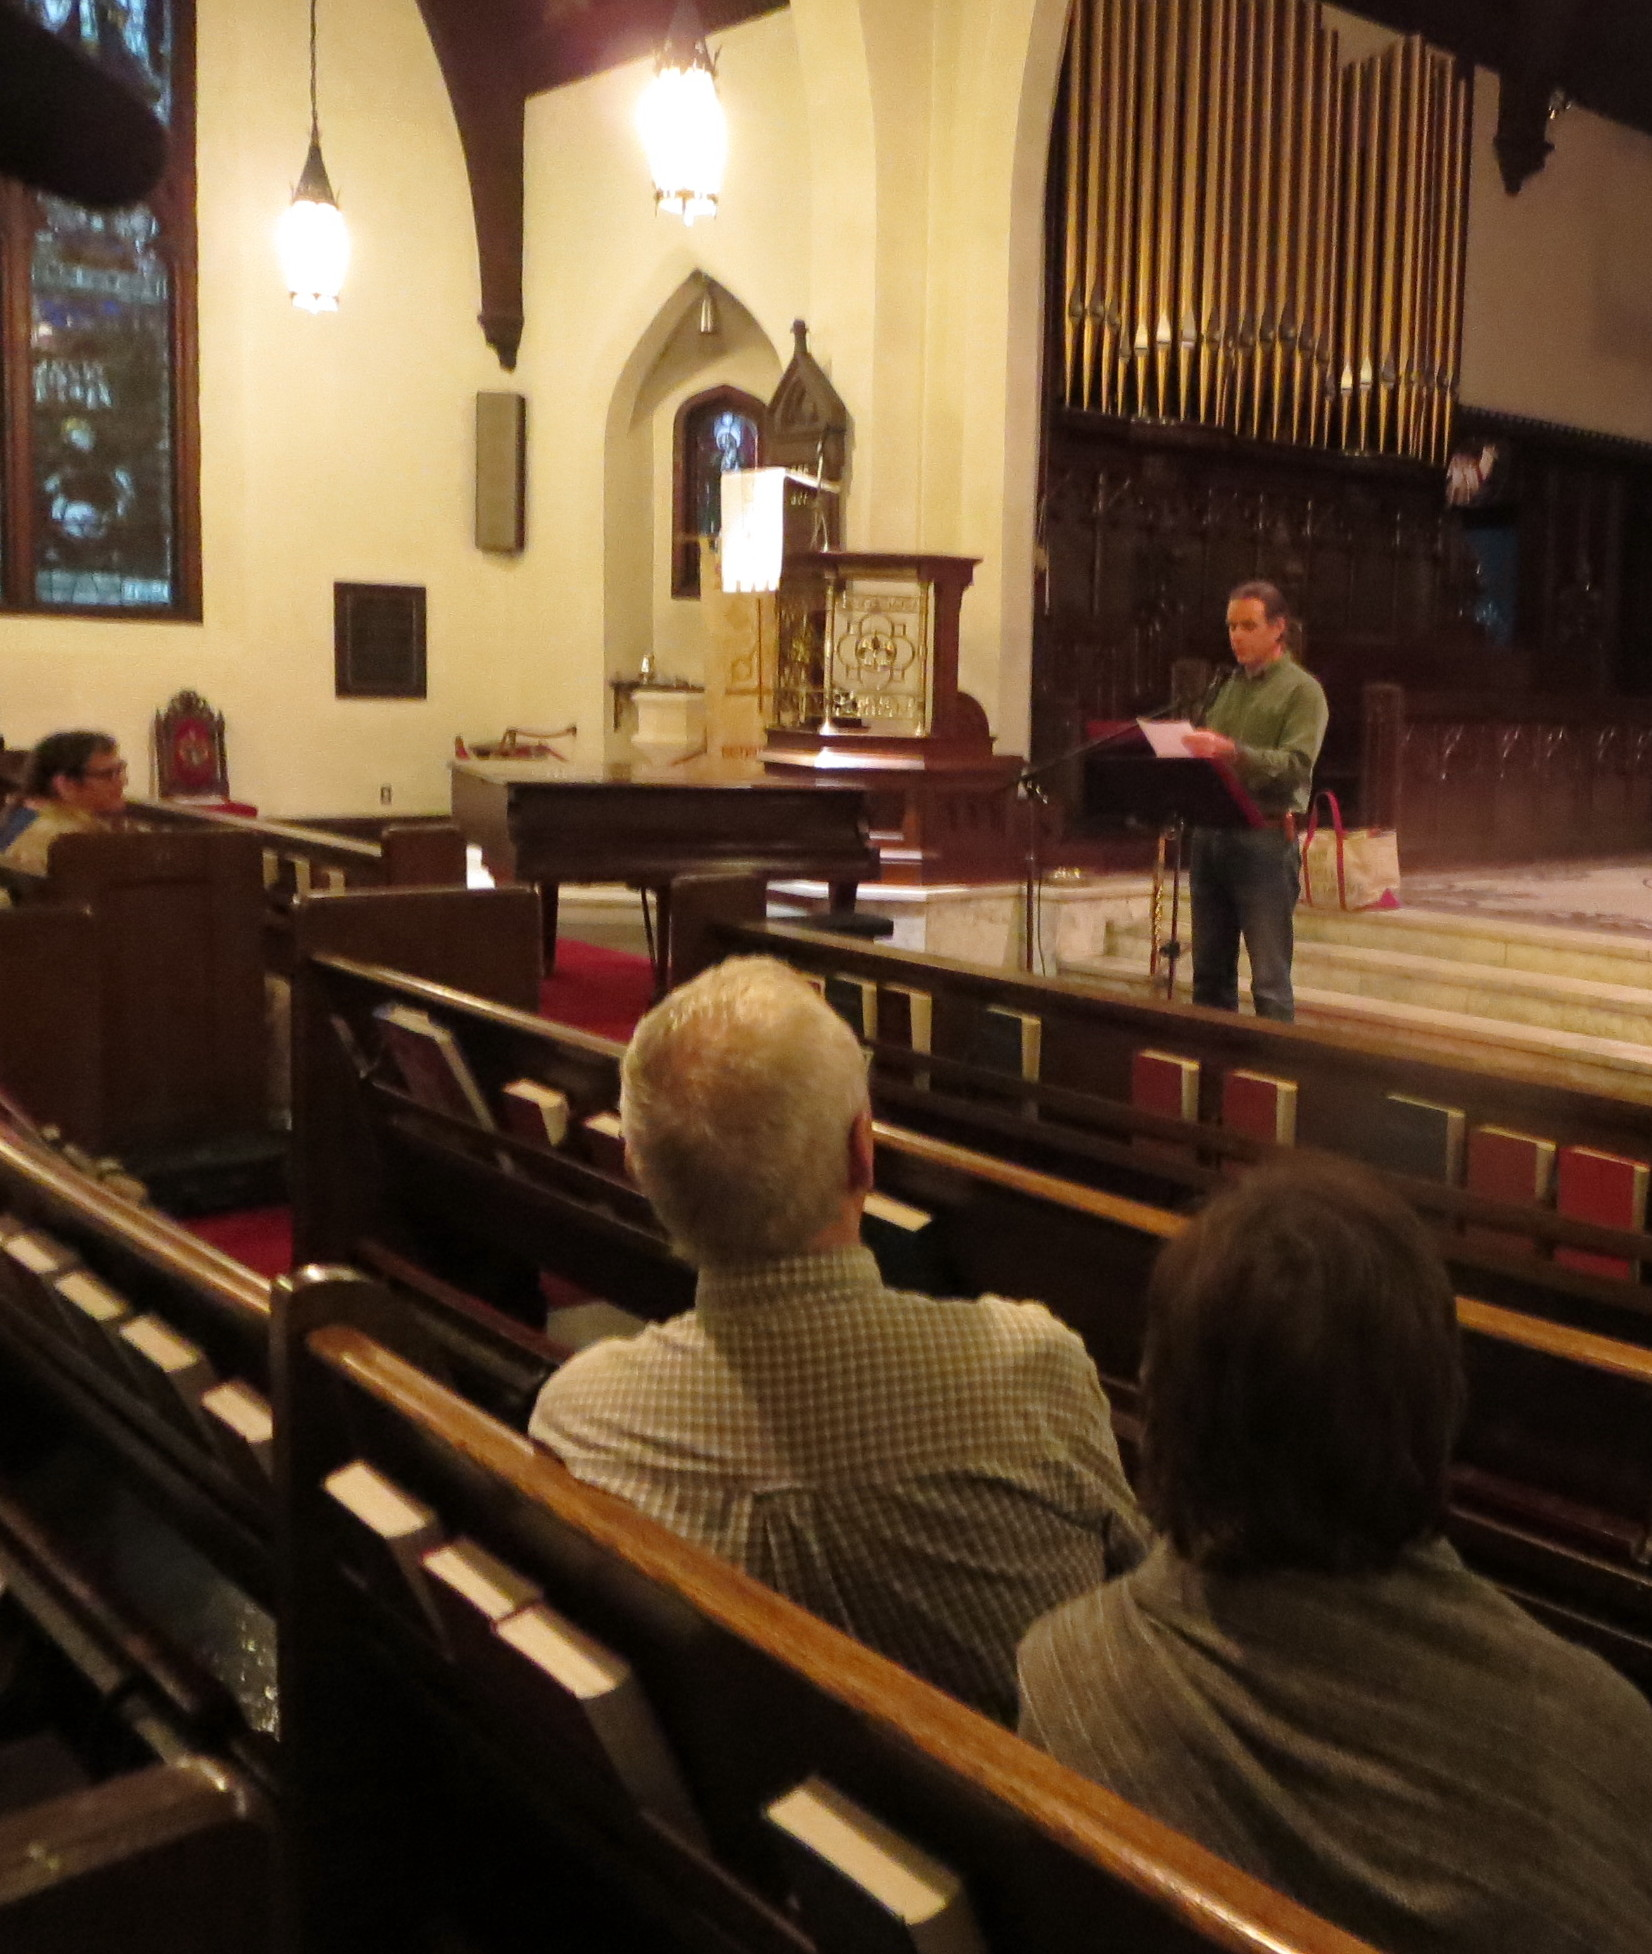 Rod Wilson's poetry reading at St. Peter's Episcopal Church in Bennington.